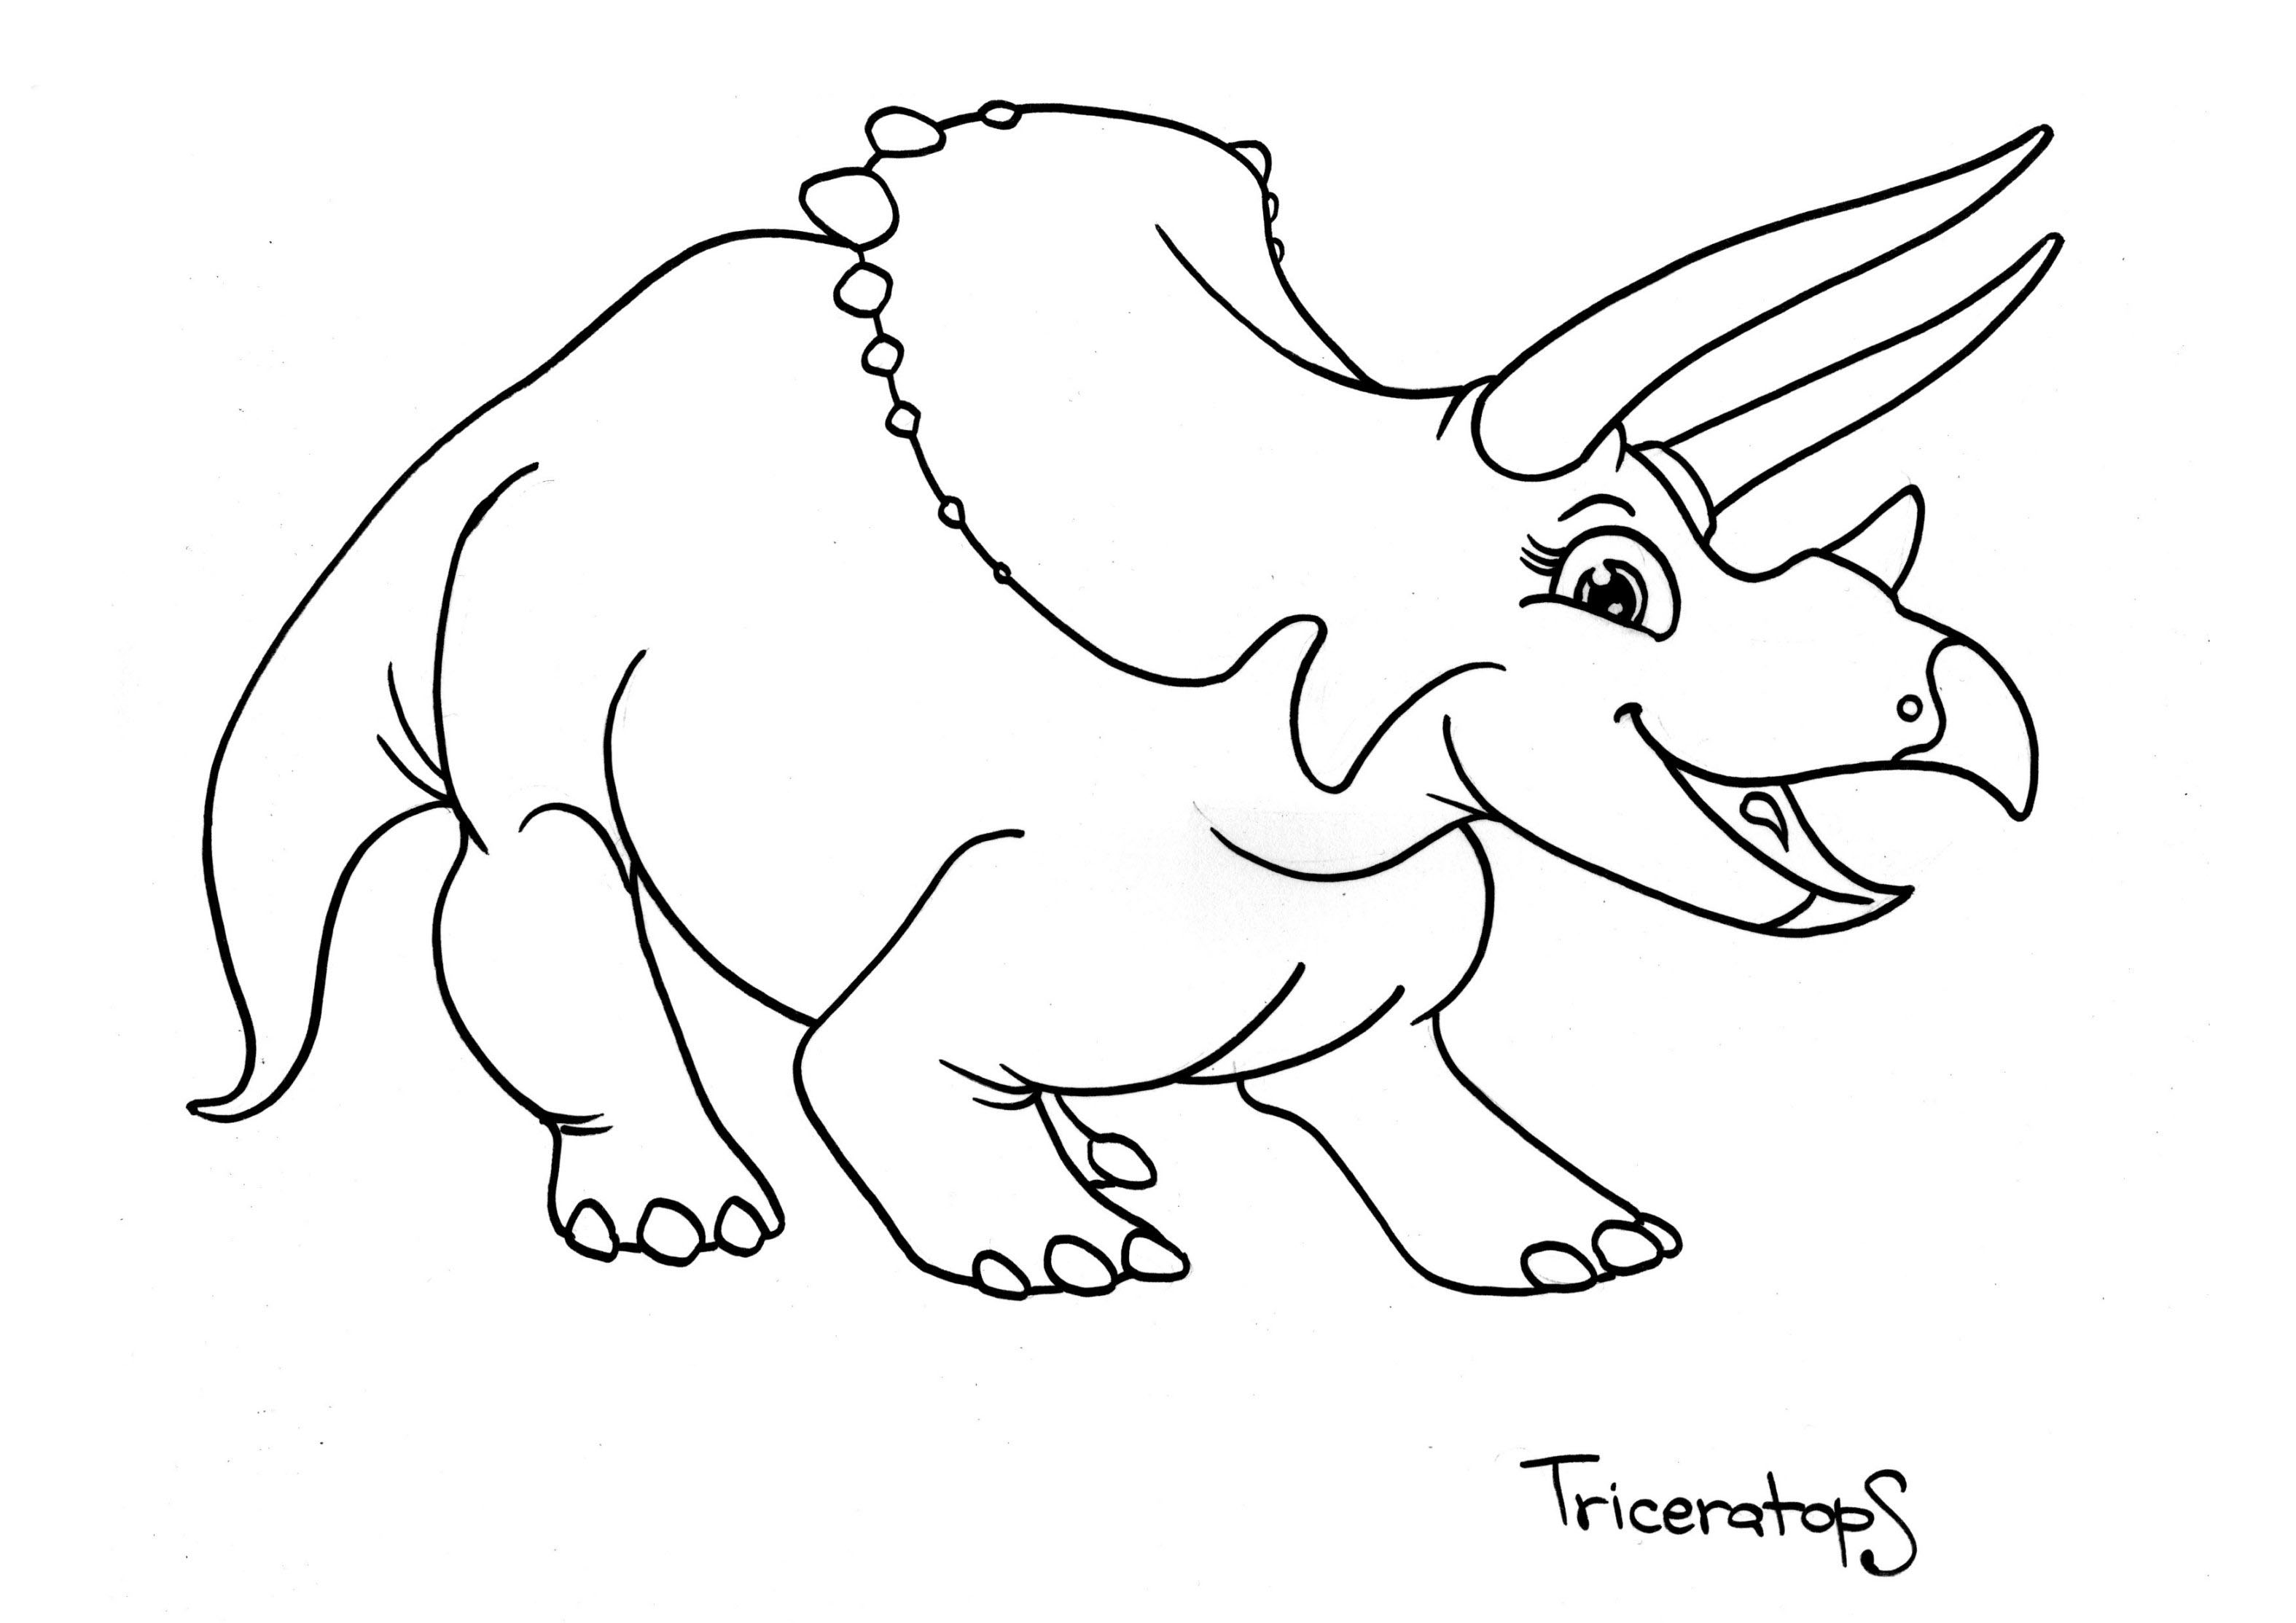 dinosaur pictures for kids dinosaur skeleton coloring page clipart panda free for pictures dinosaur kids